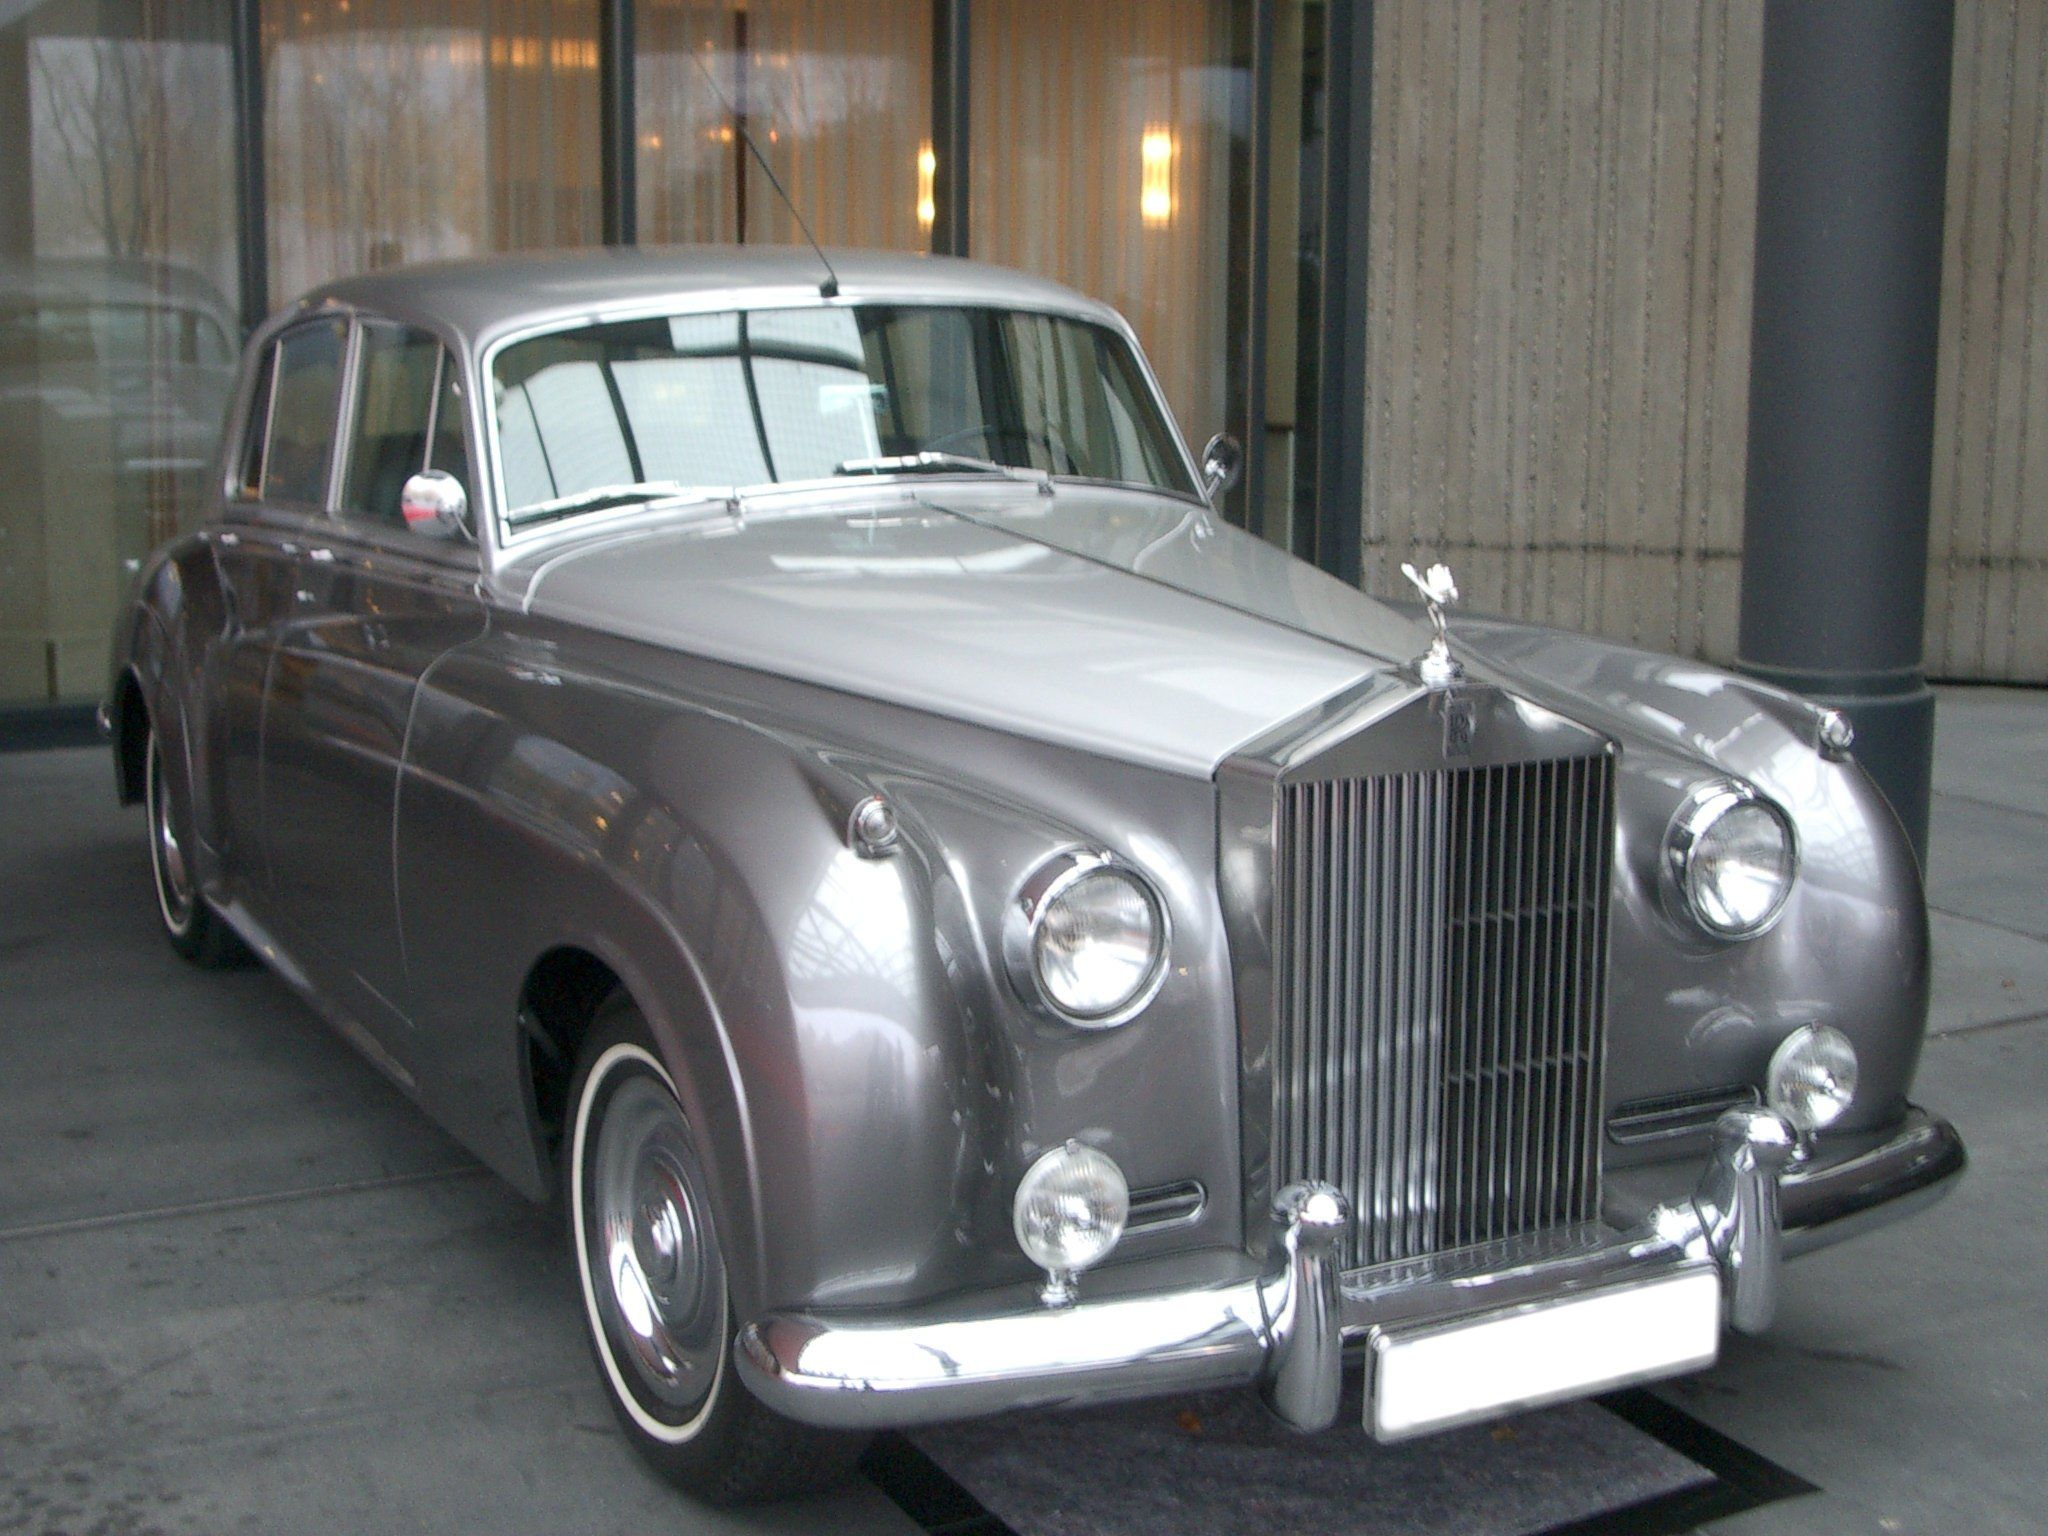 59 Rolls Royce Wraith Thank You Preston Childs For Putting Such An Awesome Car In Your Books